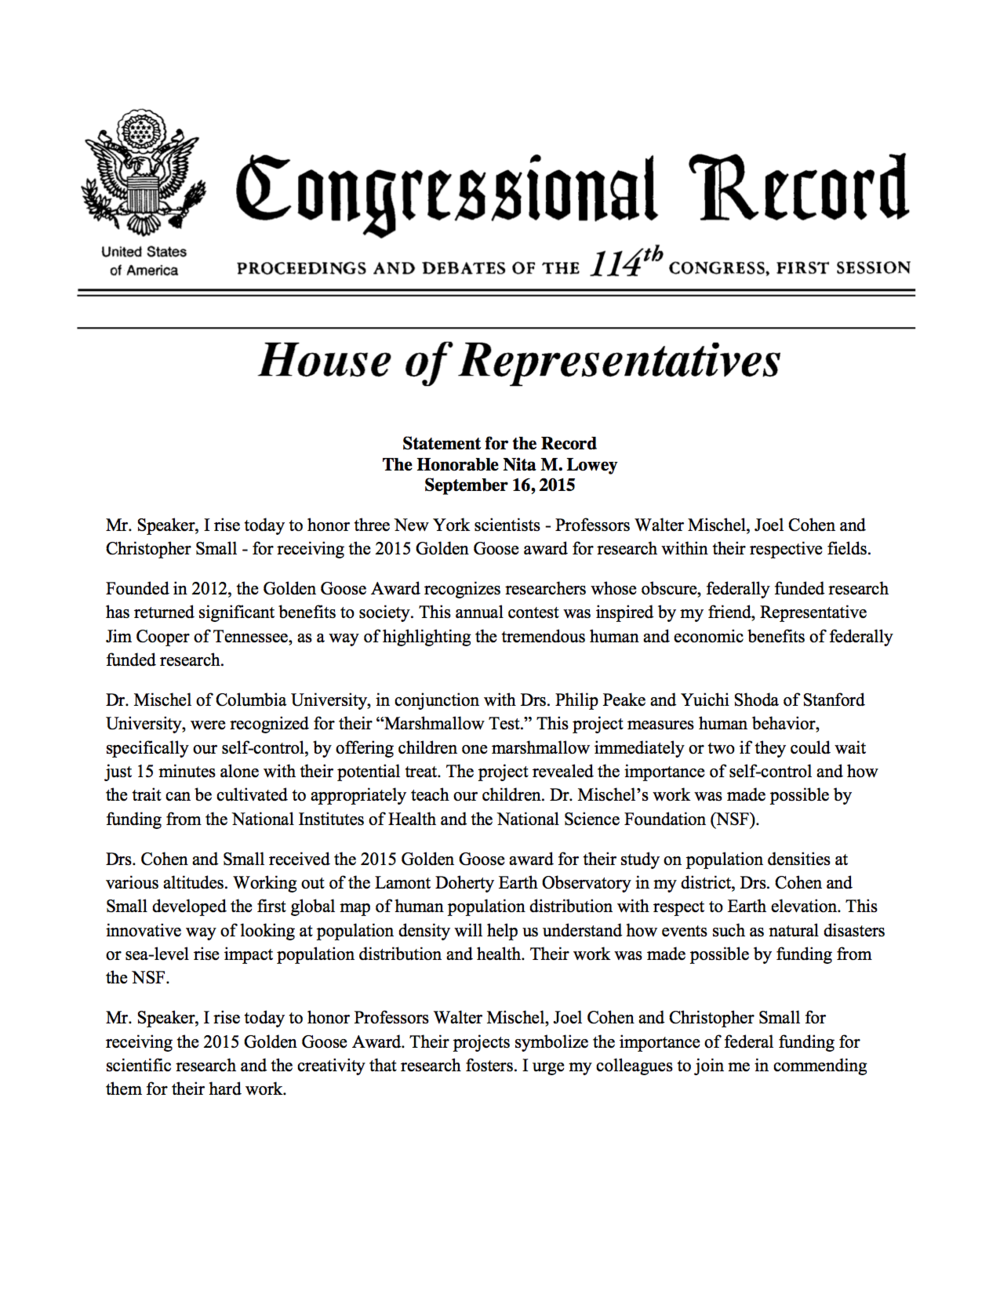 Congresswoman Nita Lowey Statement for the Record